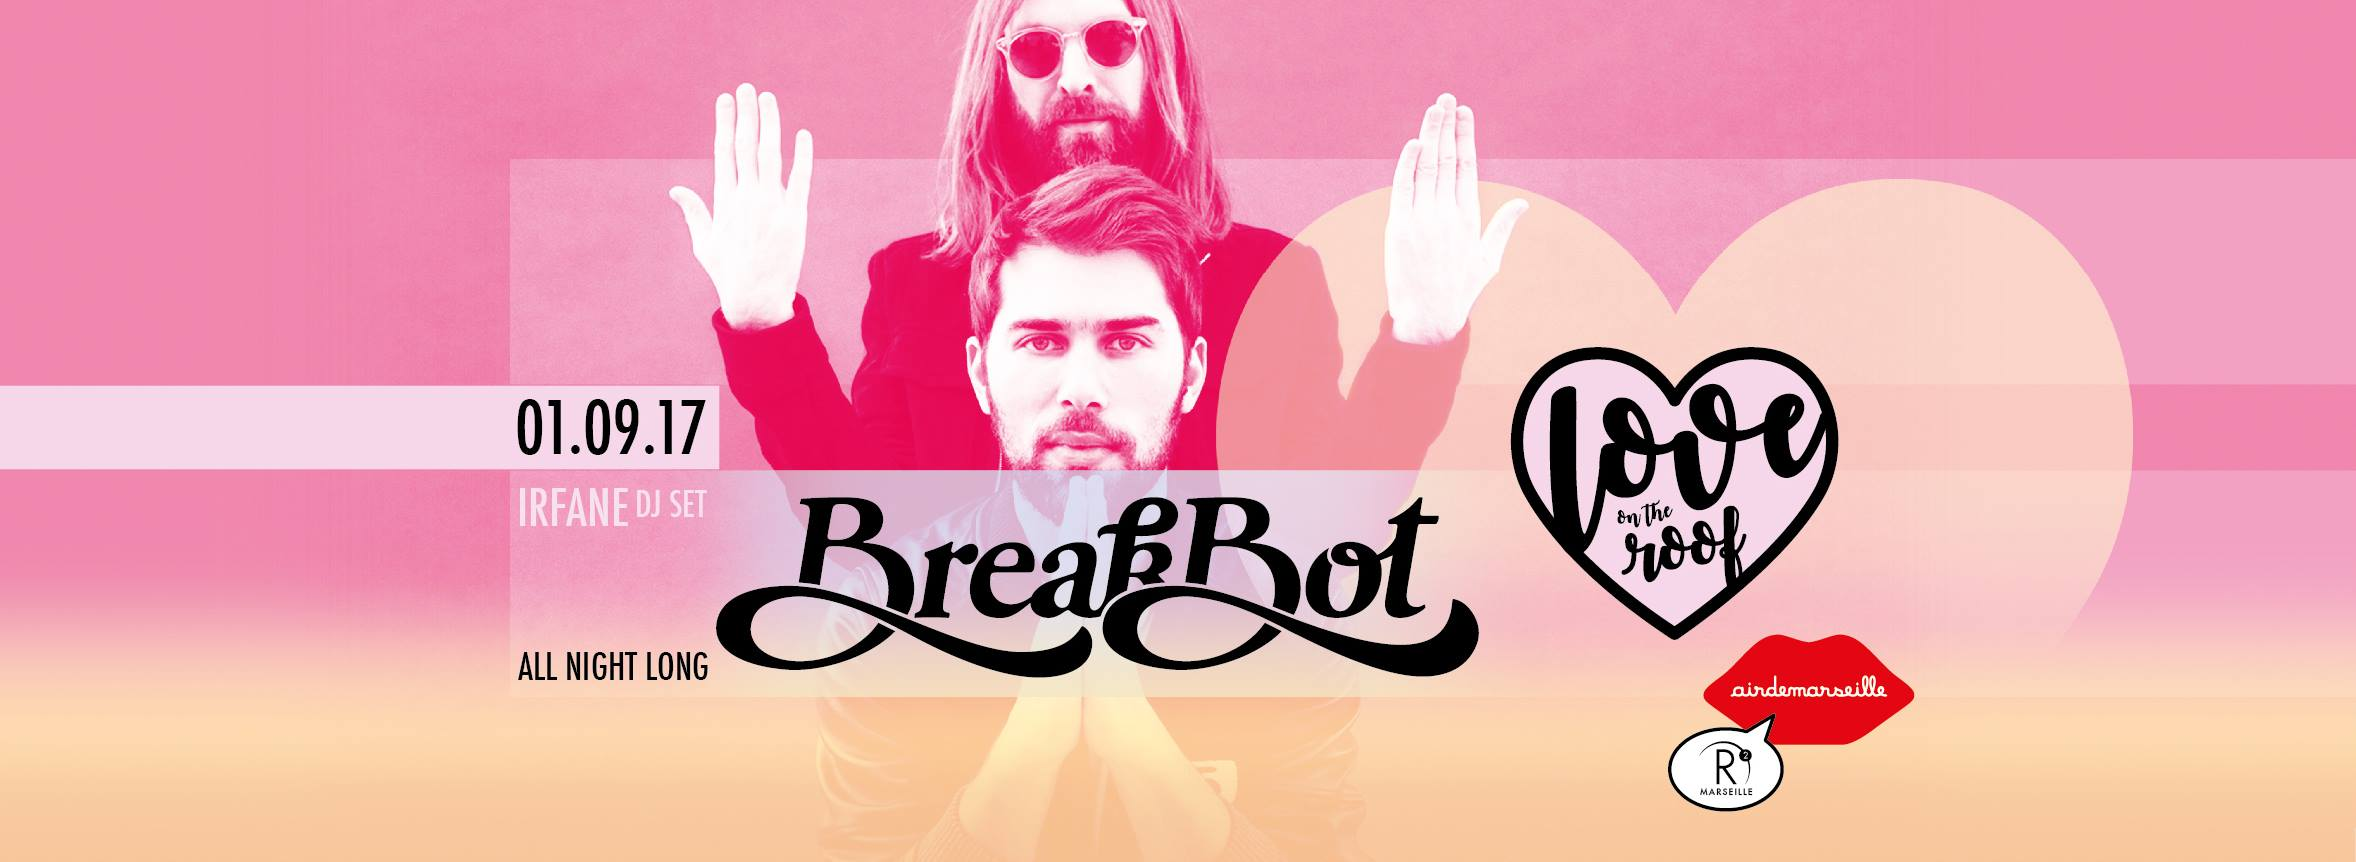 Breakbot All Night Long x Love On The Roof